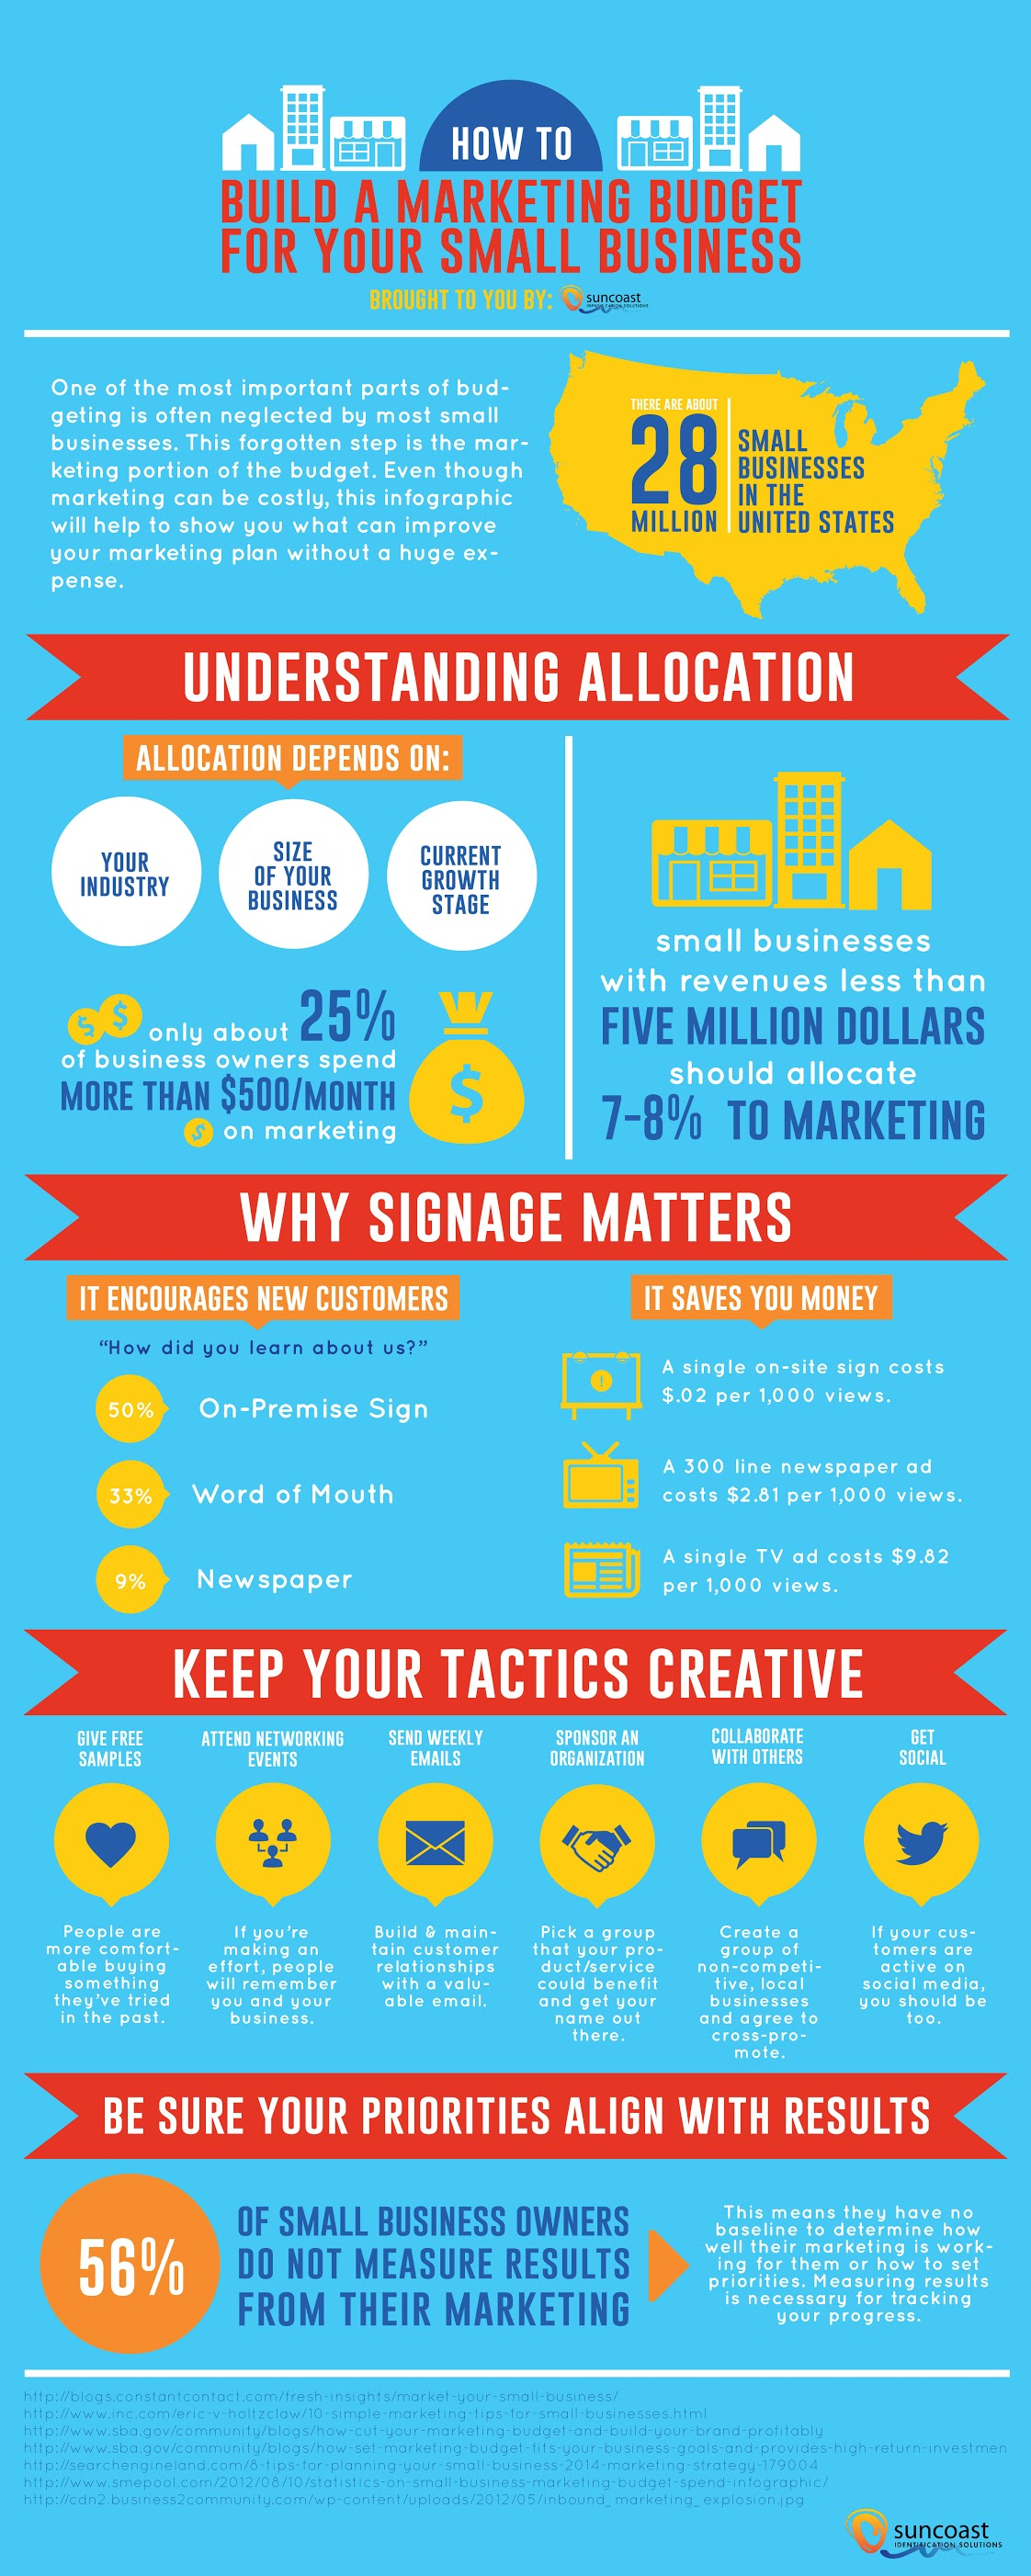 Build a Marketing Budget for Your Small Business #infographic